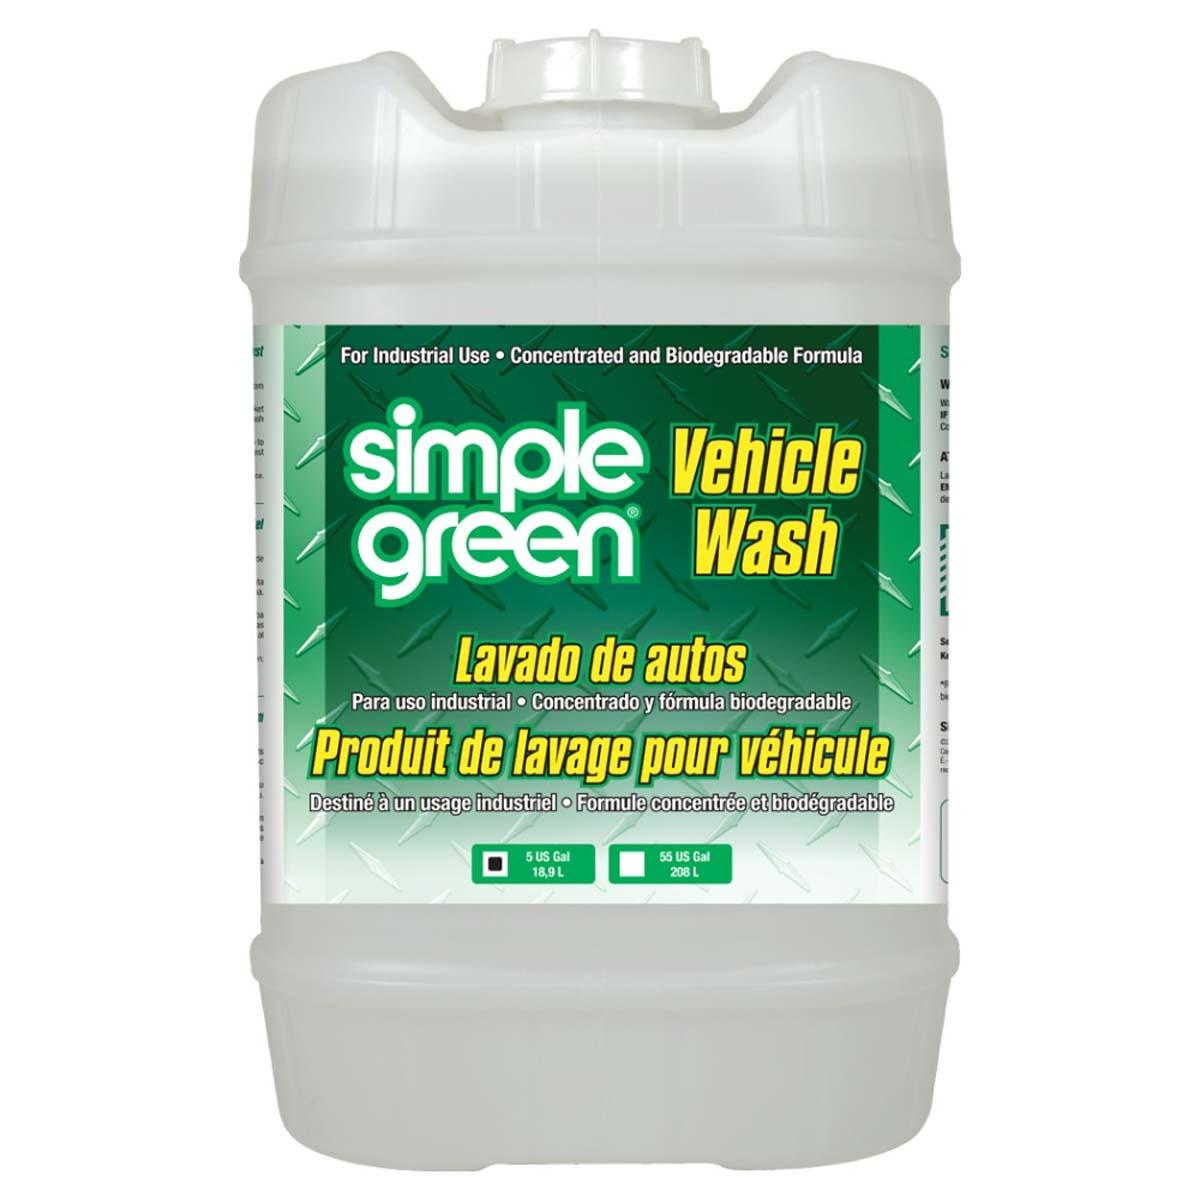 Vehicle Wash 5 gal.